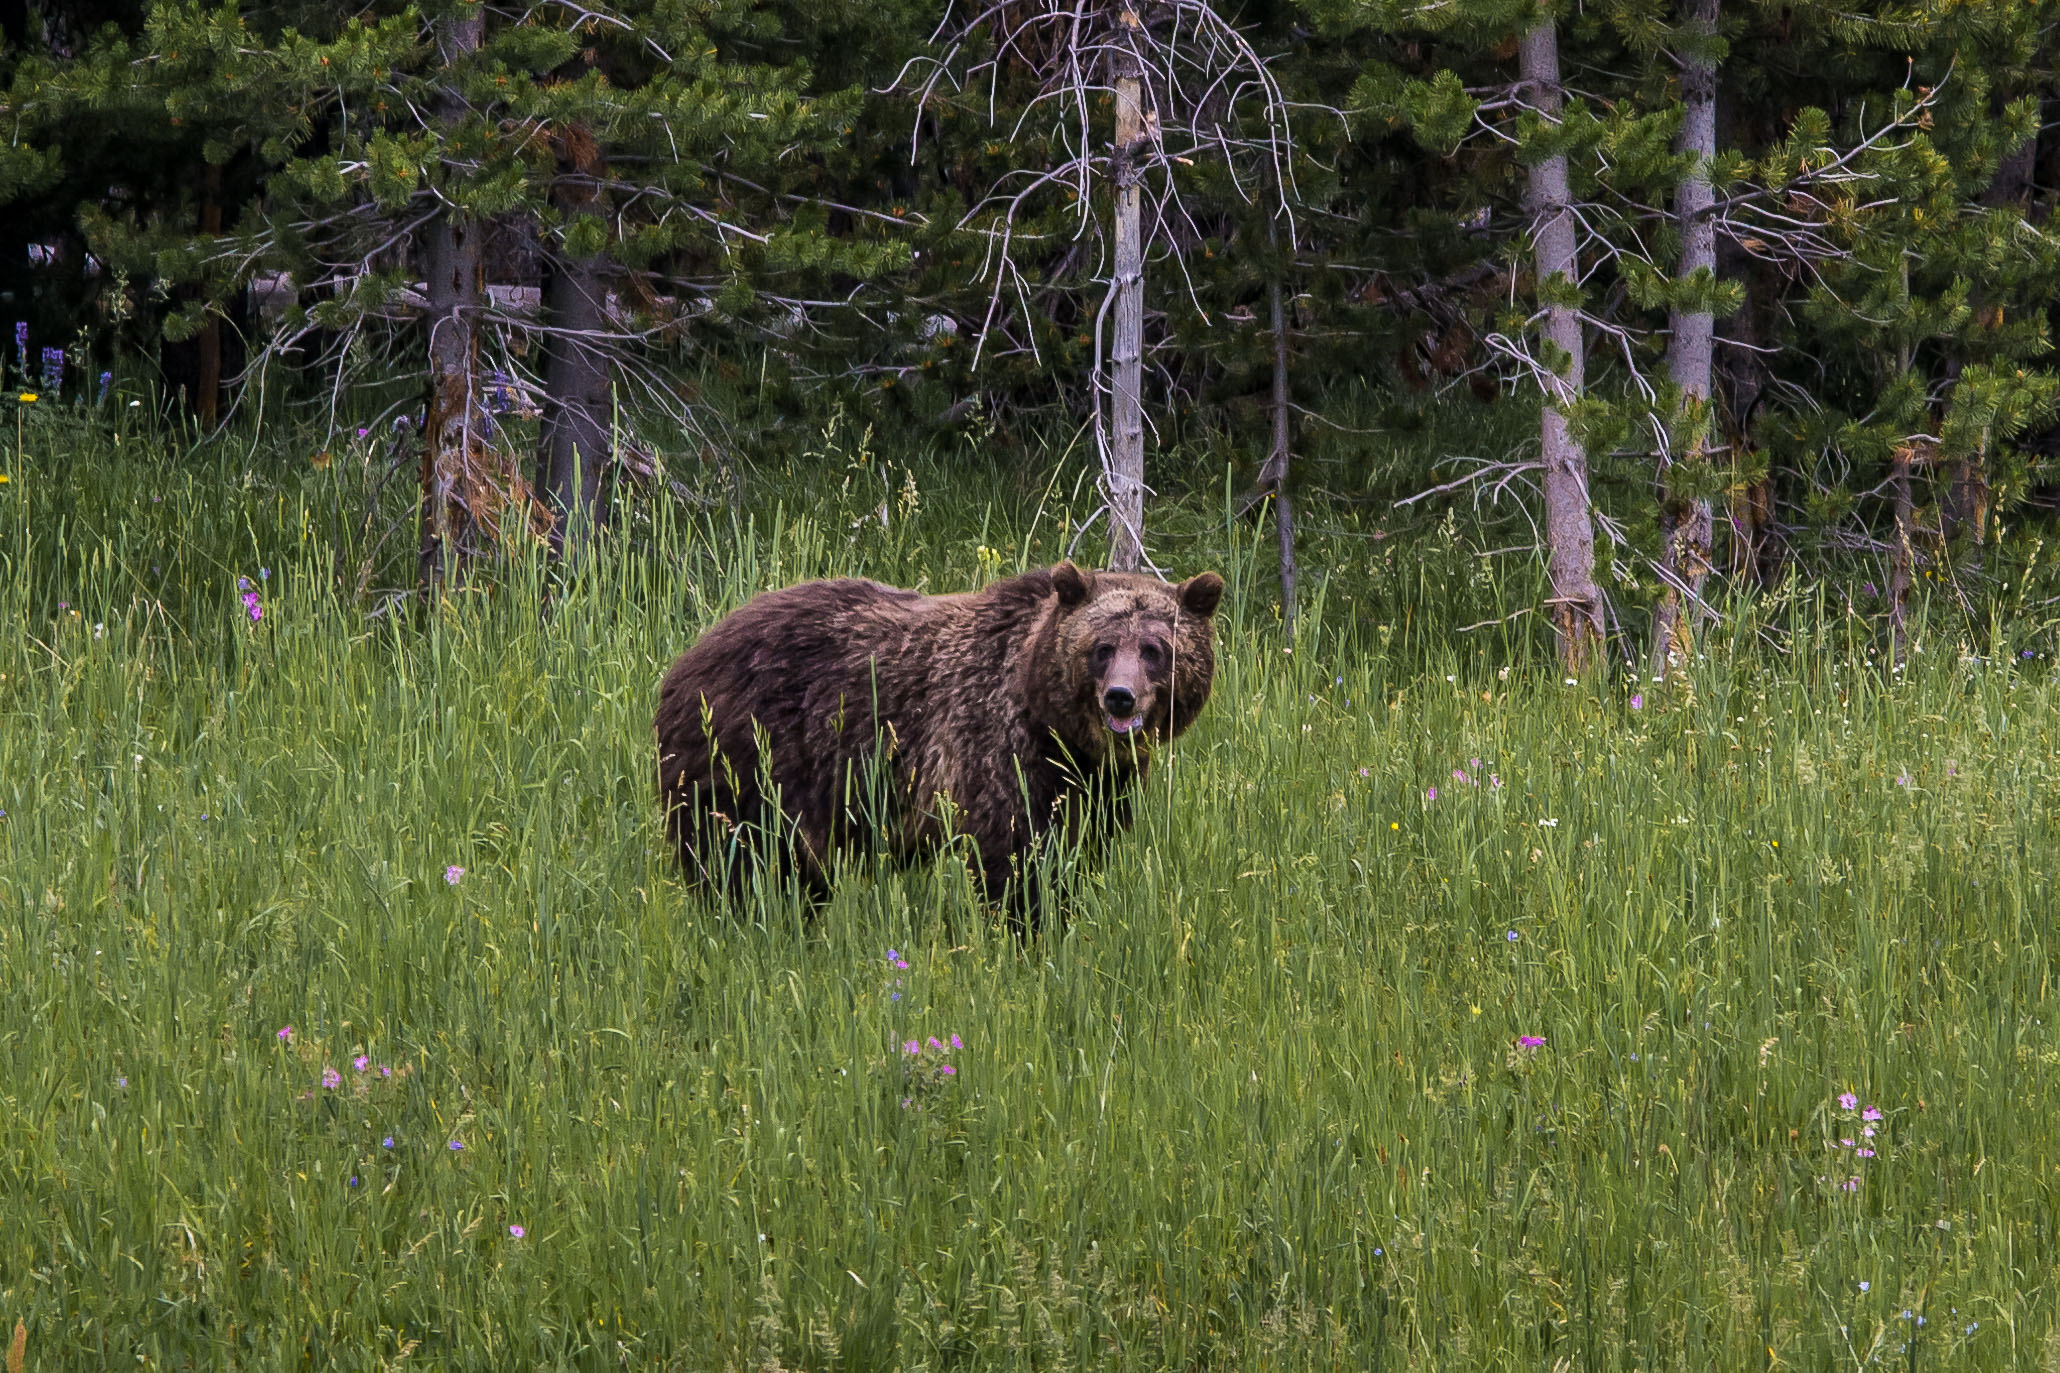 Mama Grizzly.  I am no nature photographer, so the short scampering cubs in the grass were beyond my reach.  She was a beauty and not to be messed with.